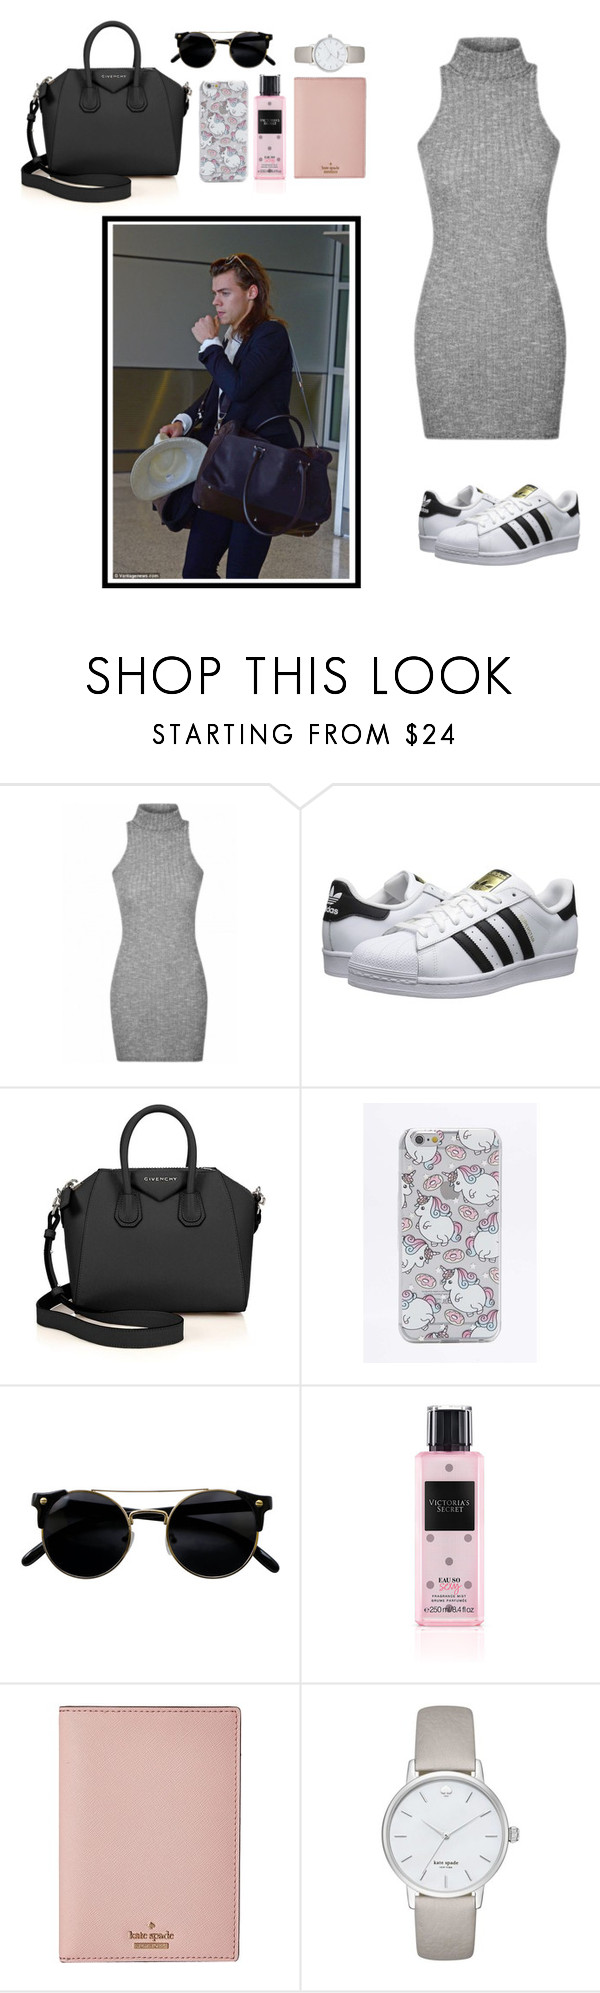 """Airport with Harry."" by peehujain ❤ liked on Polyvore featuring adidas Originals, Givenchy, Skinnydip, Victoria's Secret and Kate Spade"